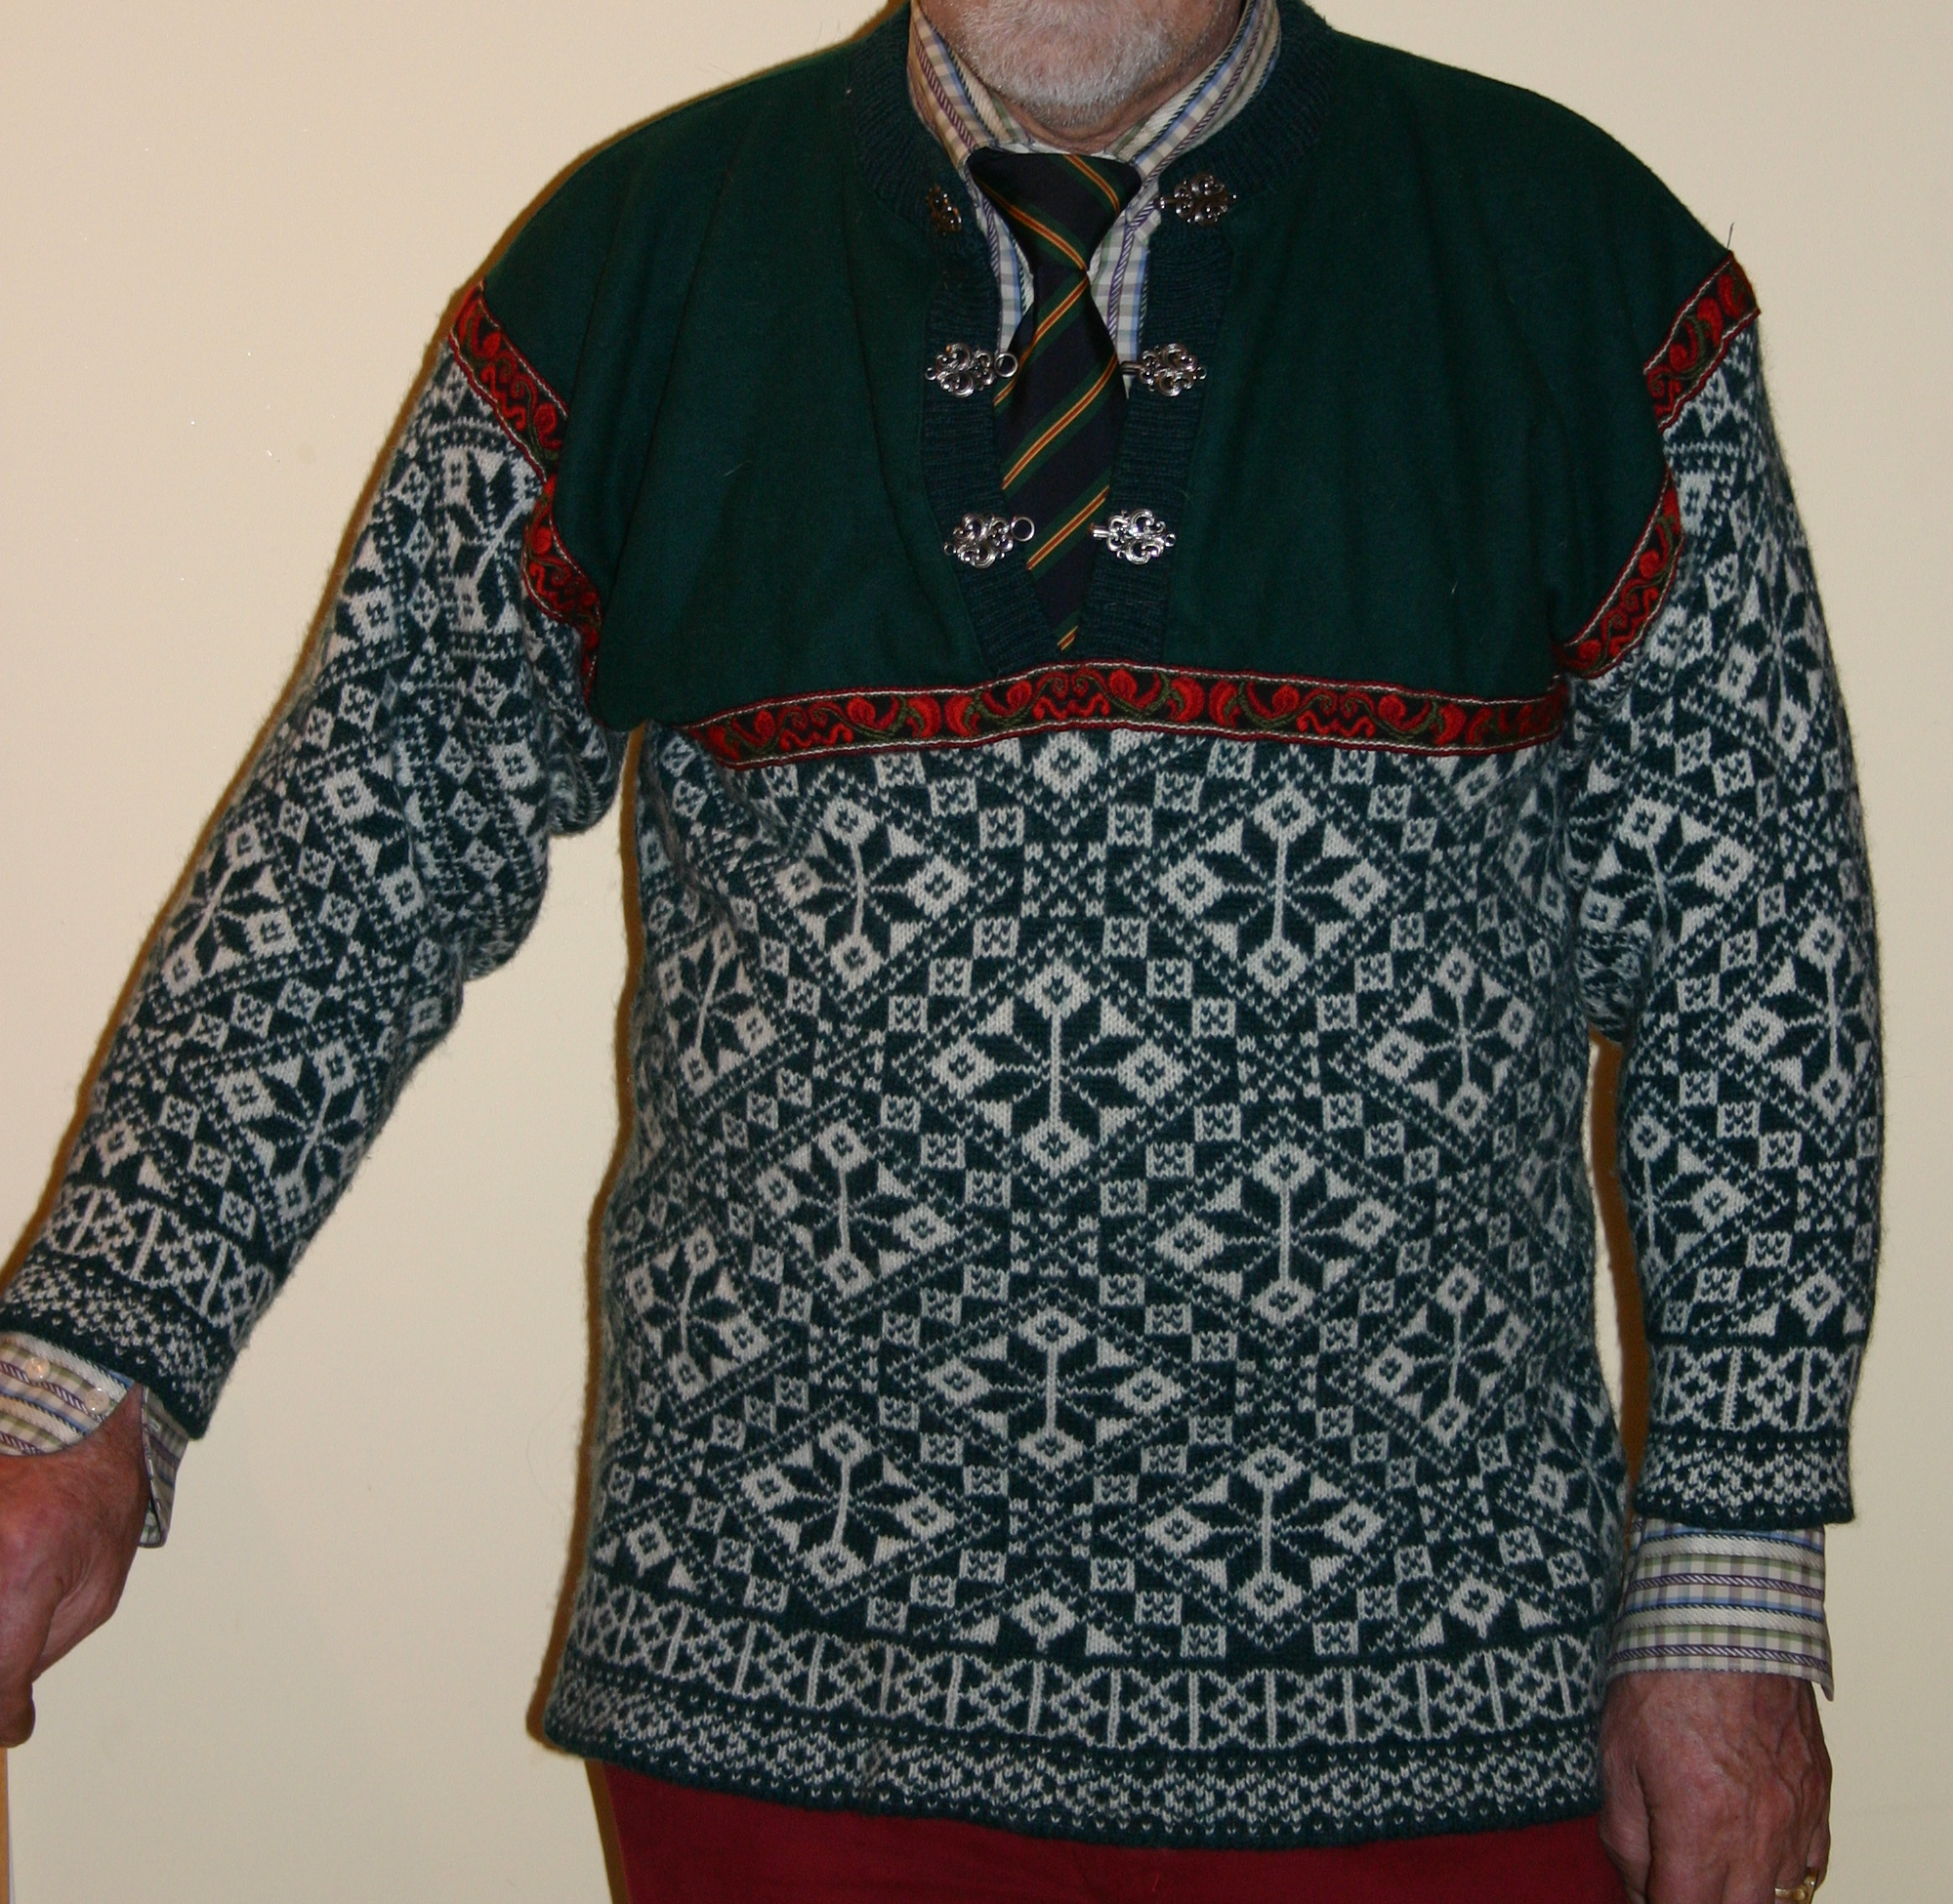 5219dd560 Sweater - Wikipedia